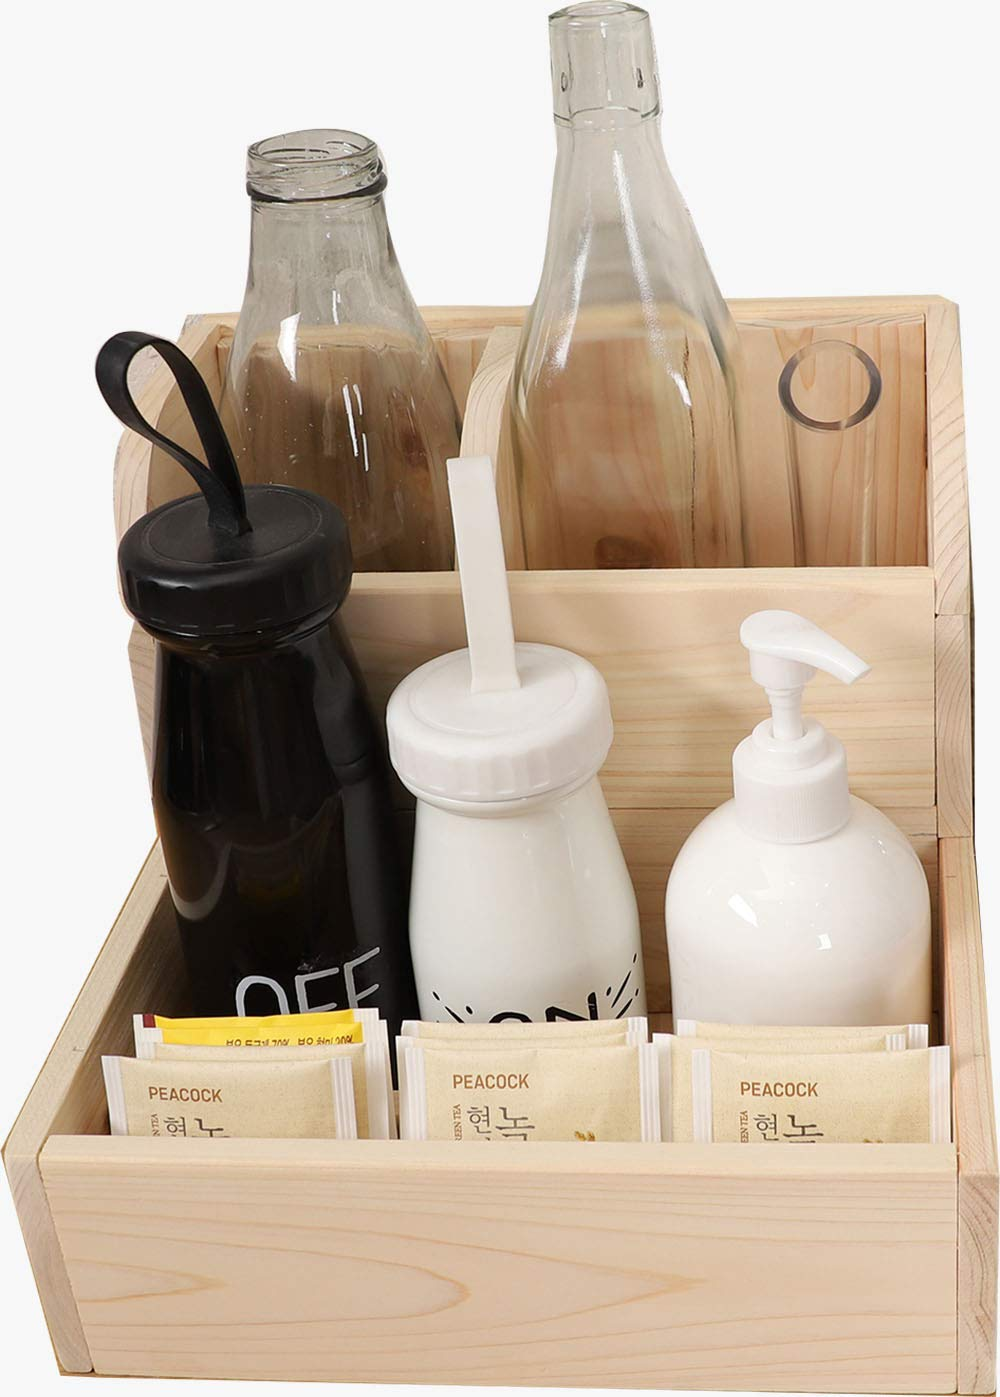 Eco-friendly hinoki wooden kitchen utensil holder | Wood splitters for furniture and kitchen utensils made of hinoki wood by WOODYDADDY